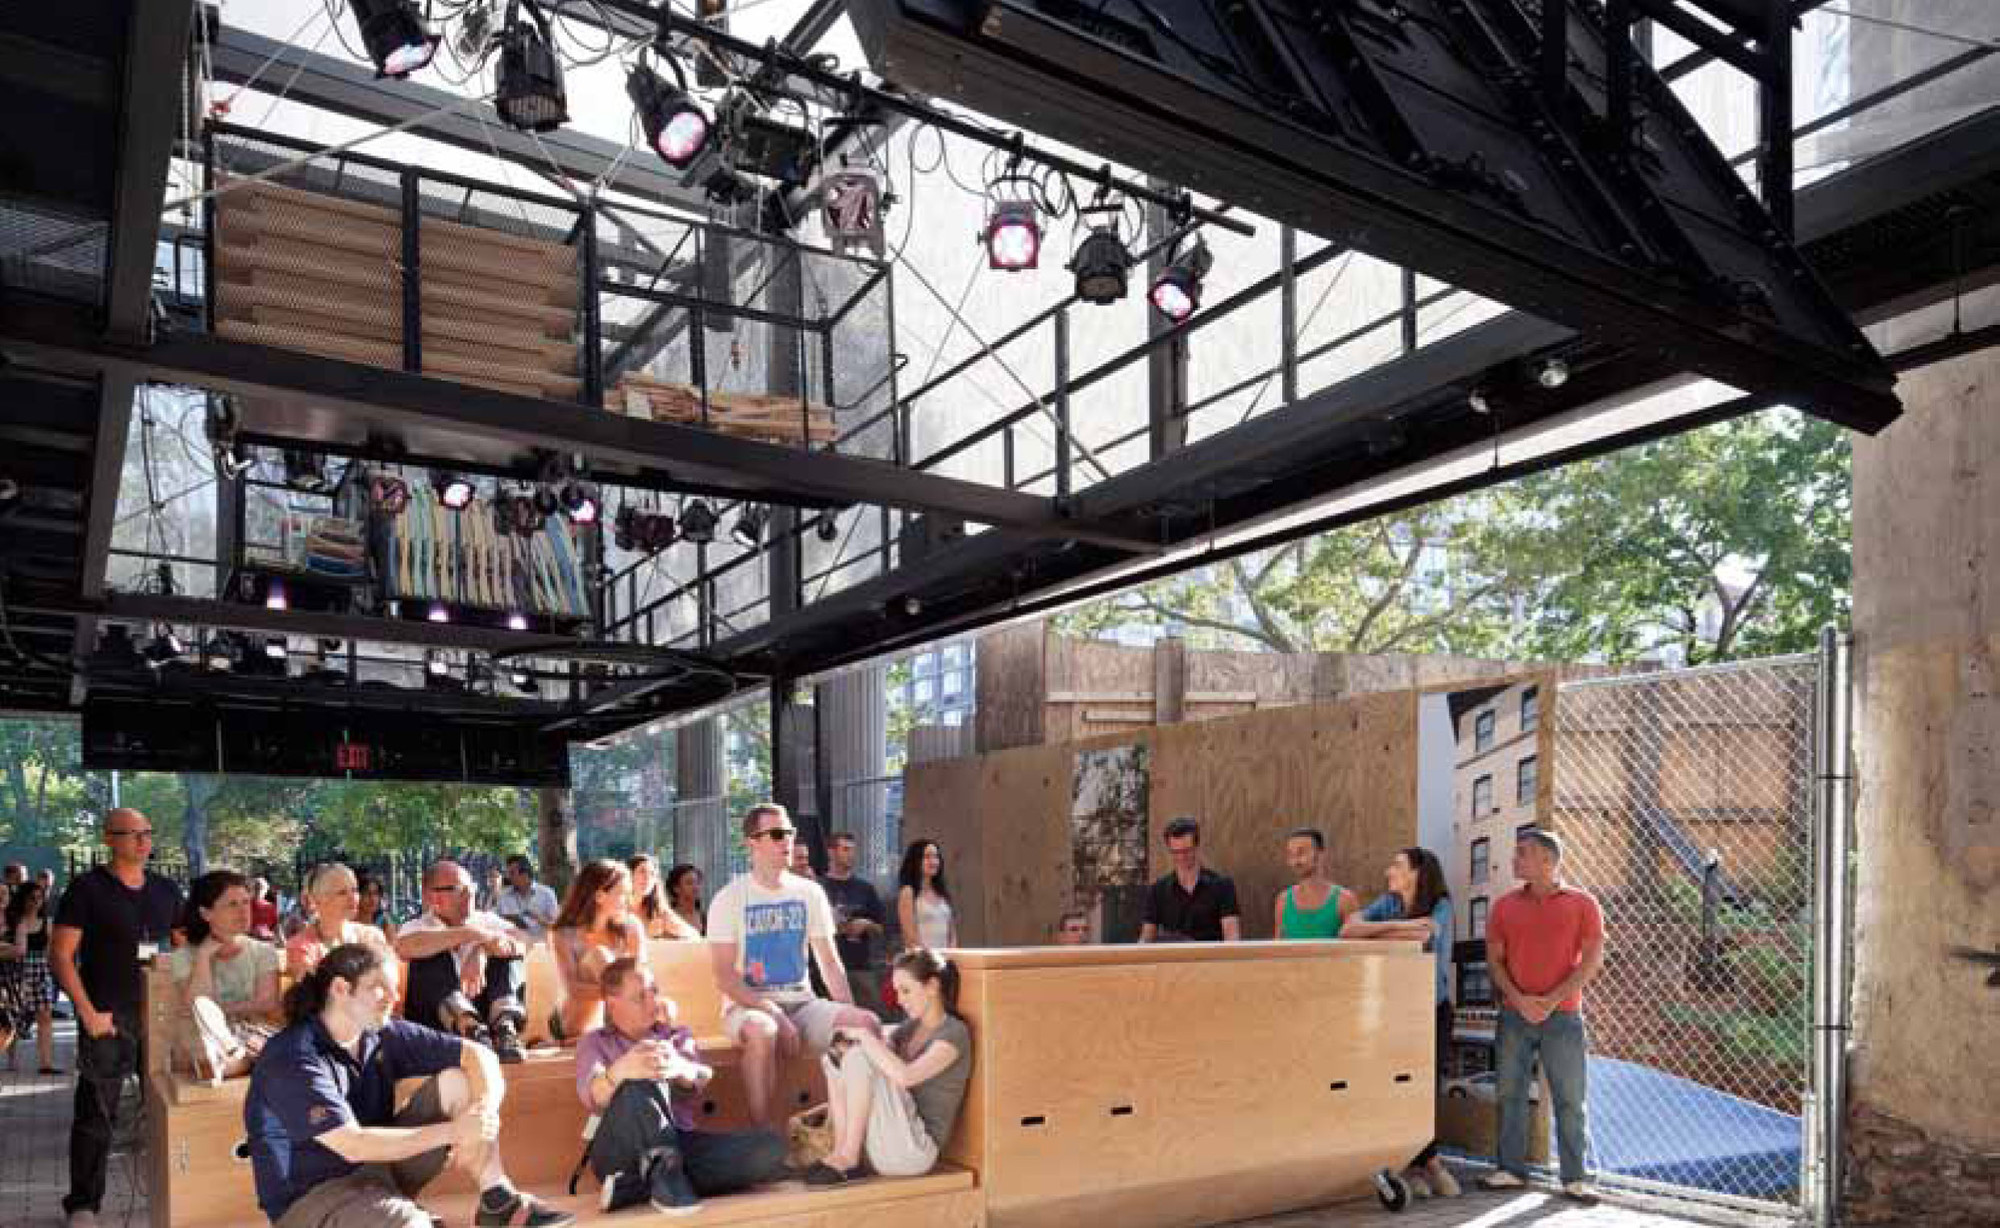 BMW Guggenheim Lab; Atelier Bow-Wow and MAGMA Architecture. Image Courtesy of Urban Living Awards